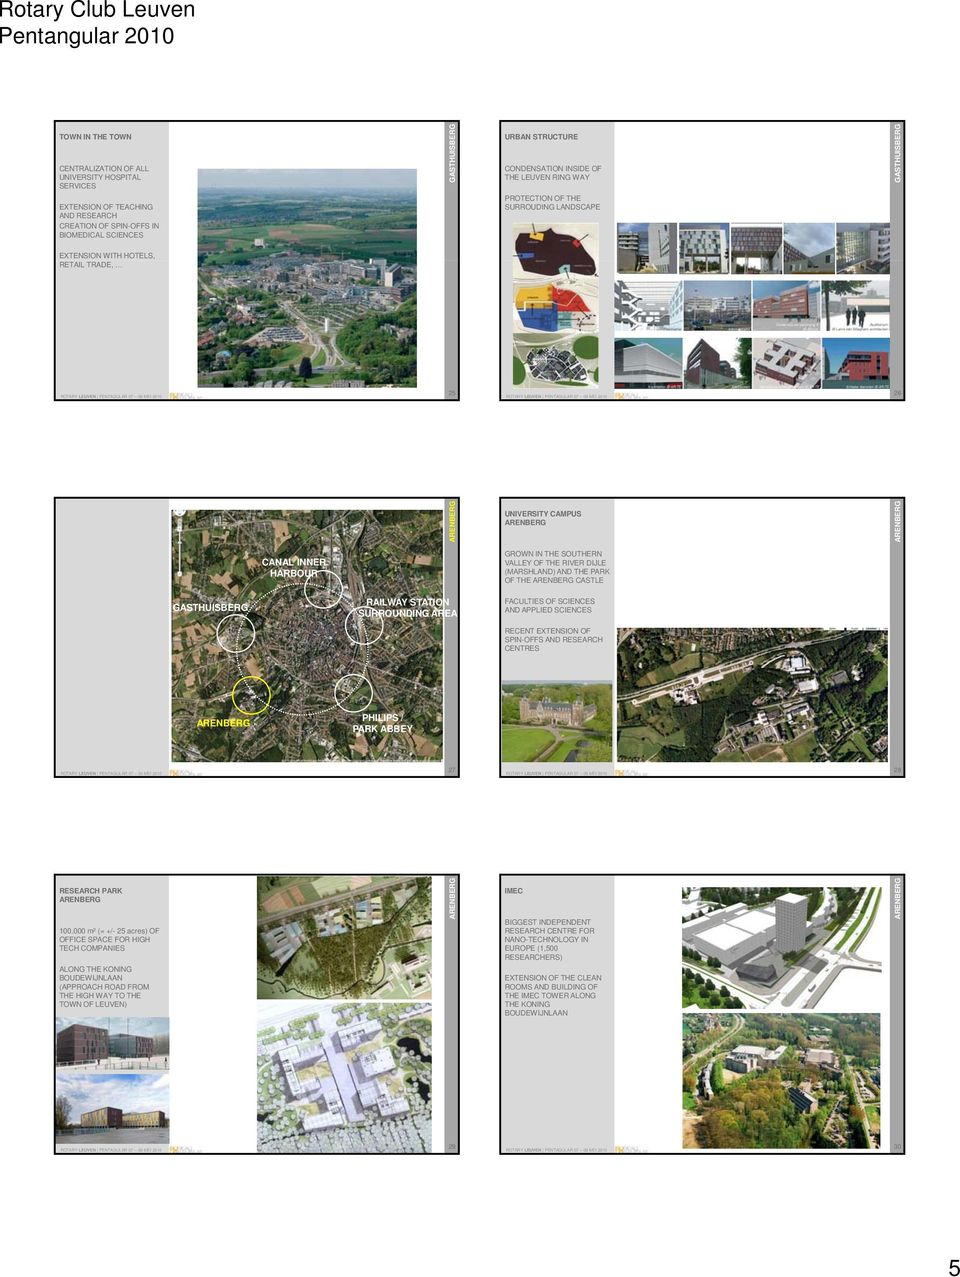 FACULTIES OF SCIENCES AND APPLIED SCIENCES RECENT EXTENSION OF SPIN-OFFS AND RESEARCH CENTRES 27 28 RESEARCH PARK 100.